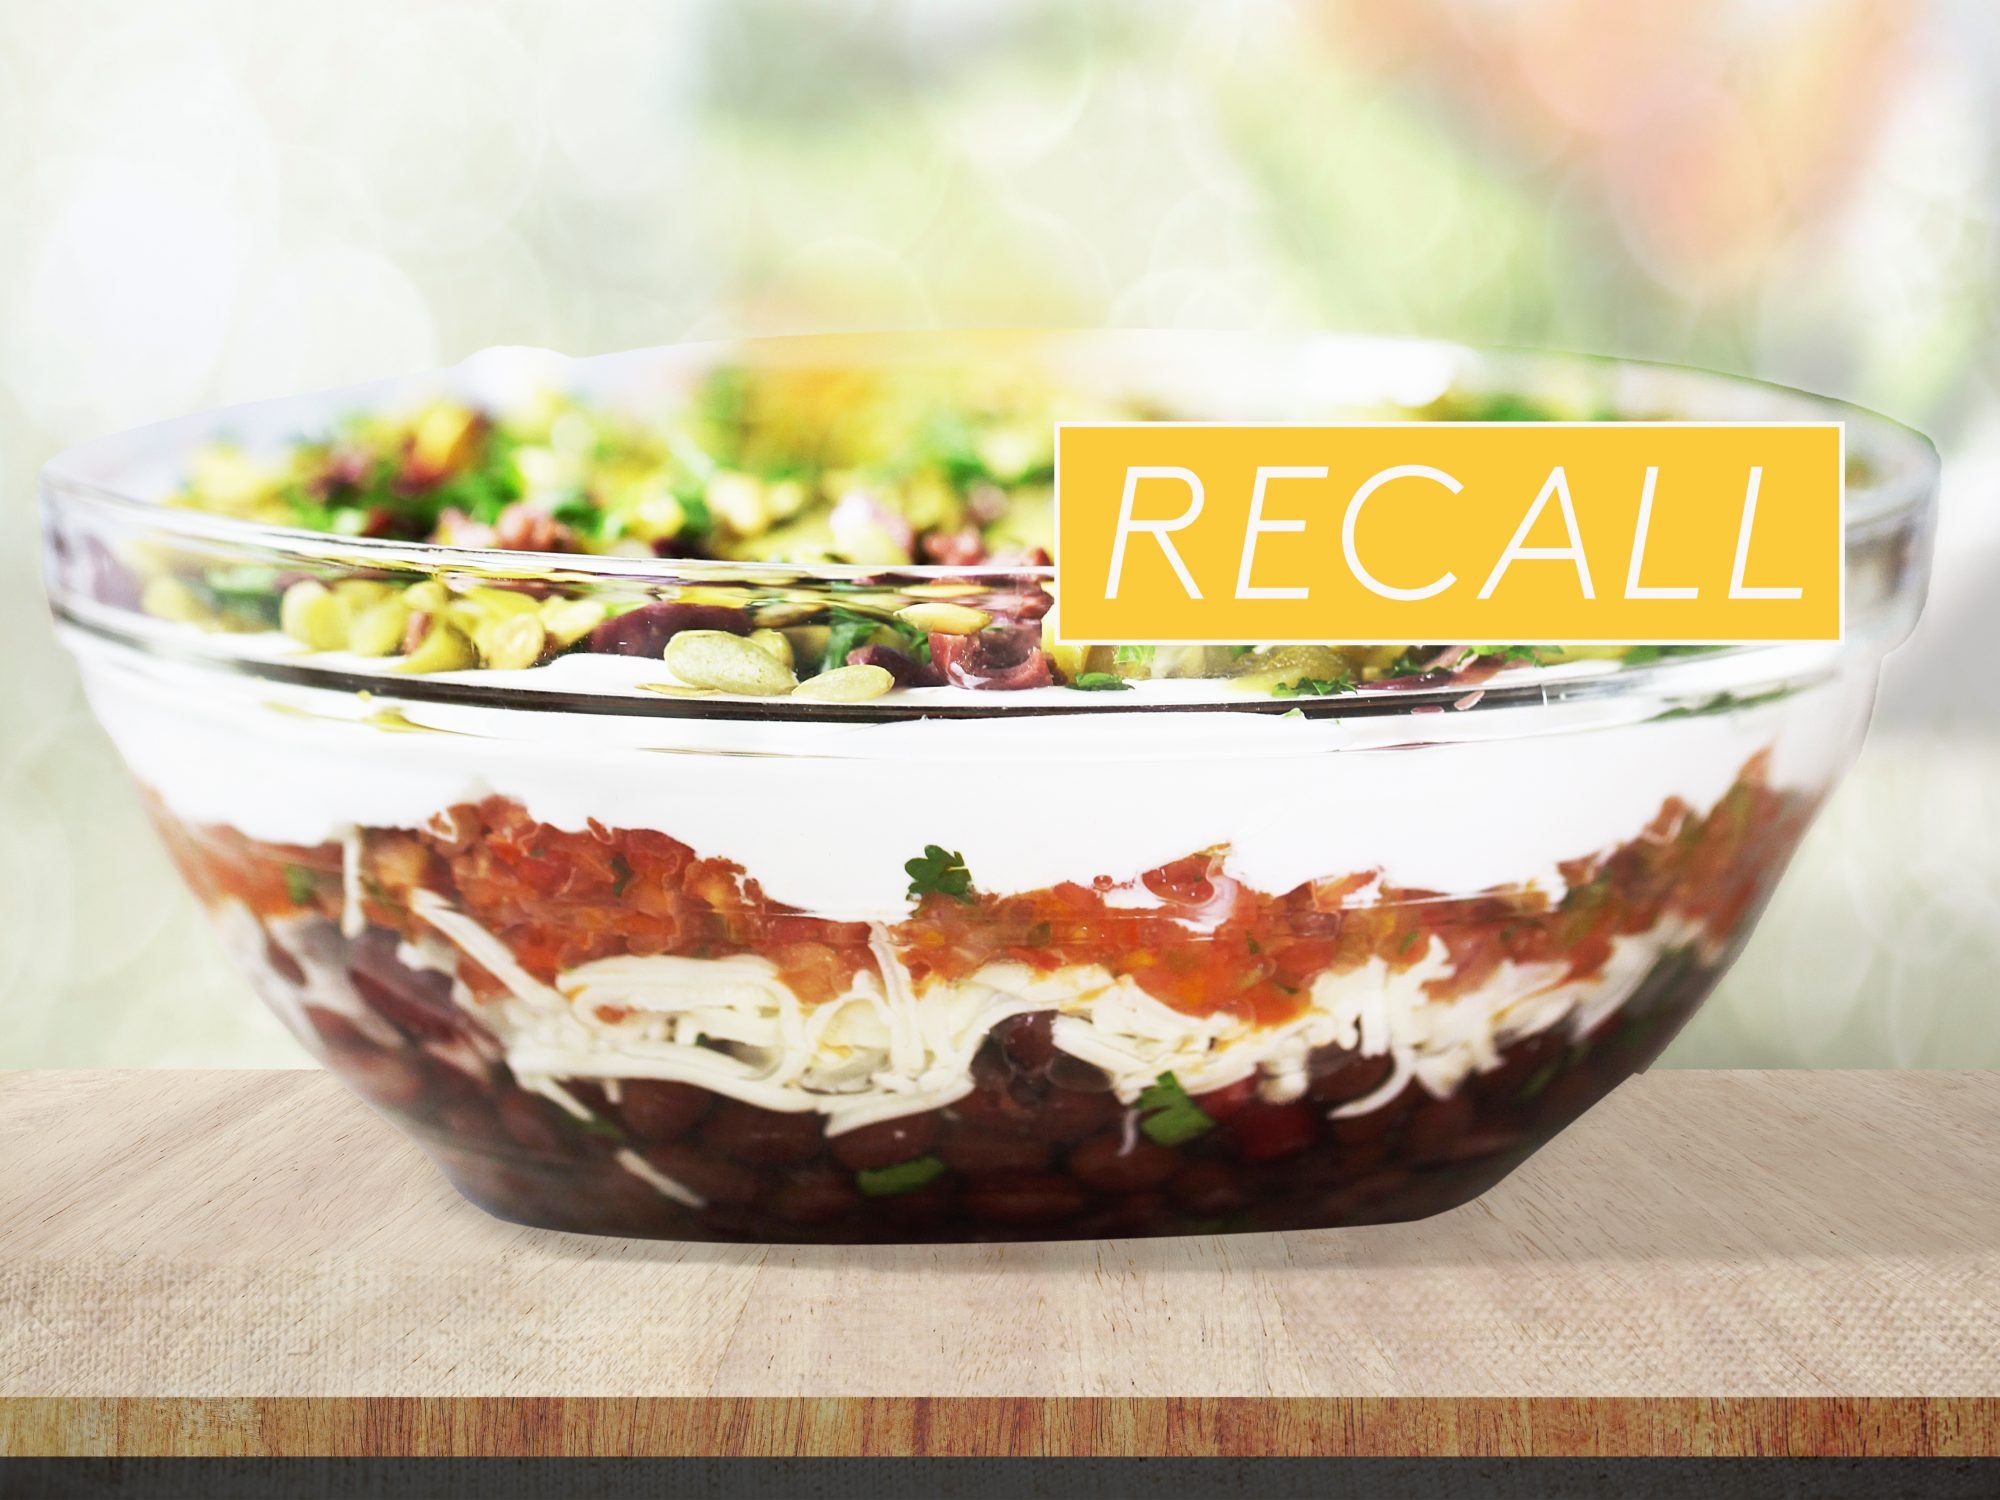 j-j-distributing-taco-dip-party-platter-recall-listeria